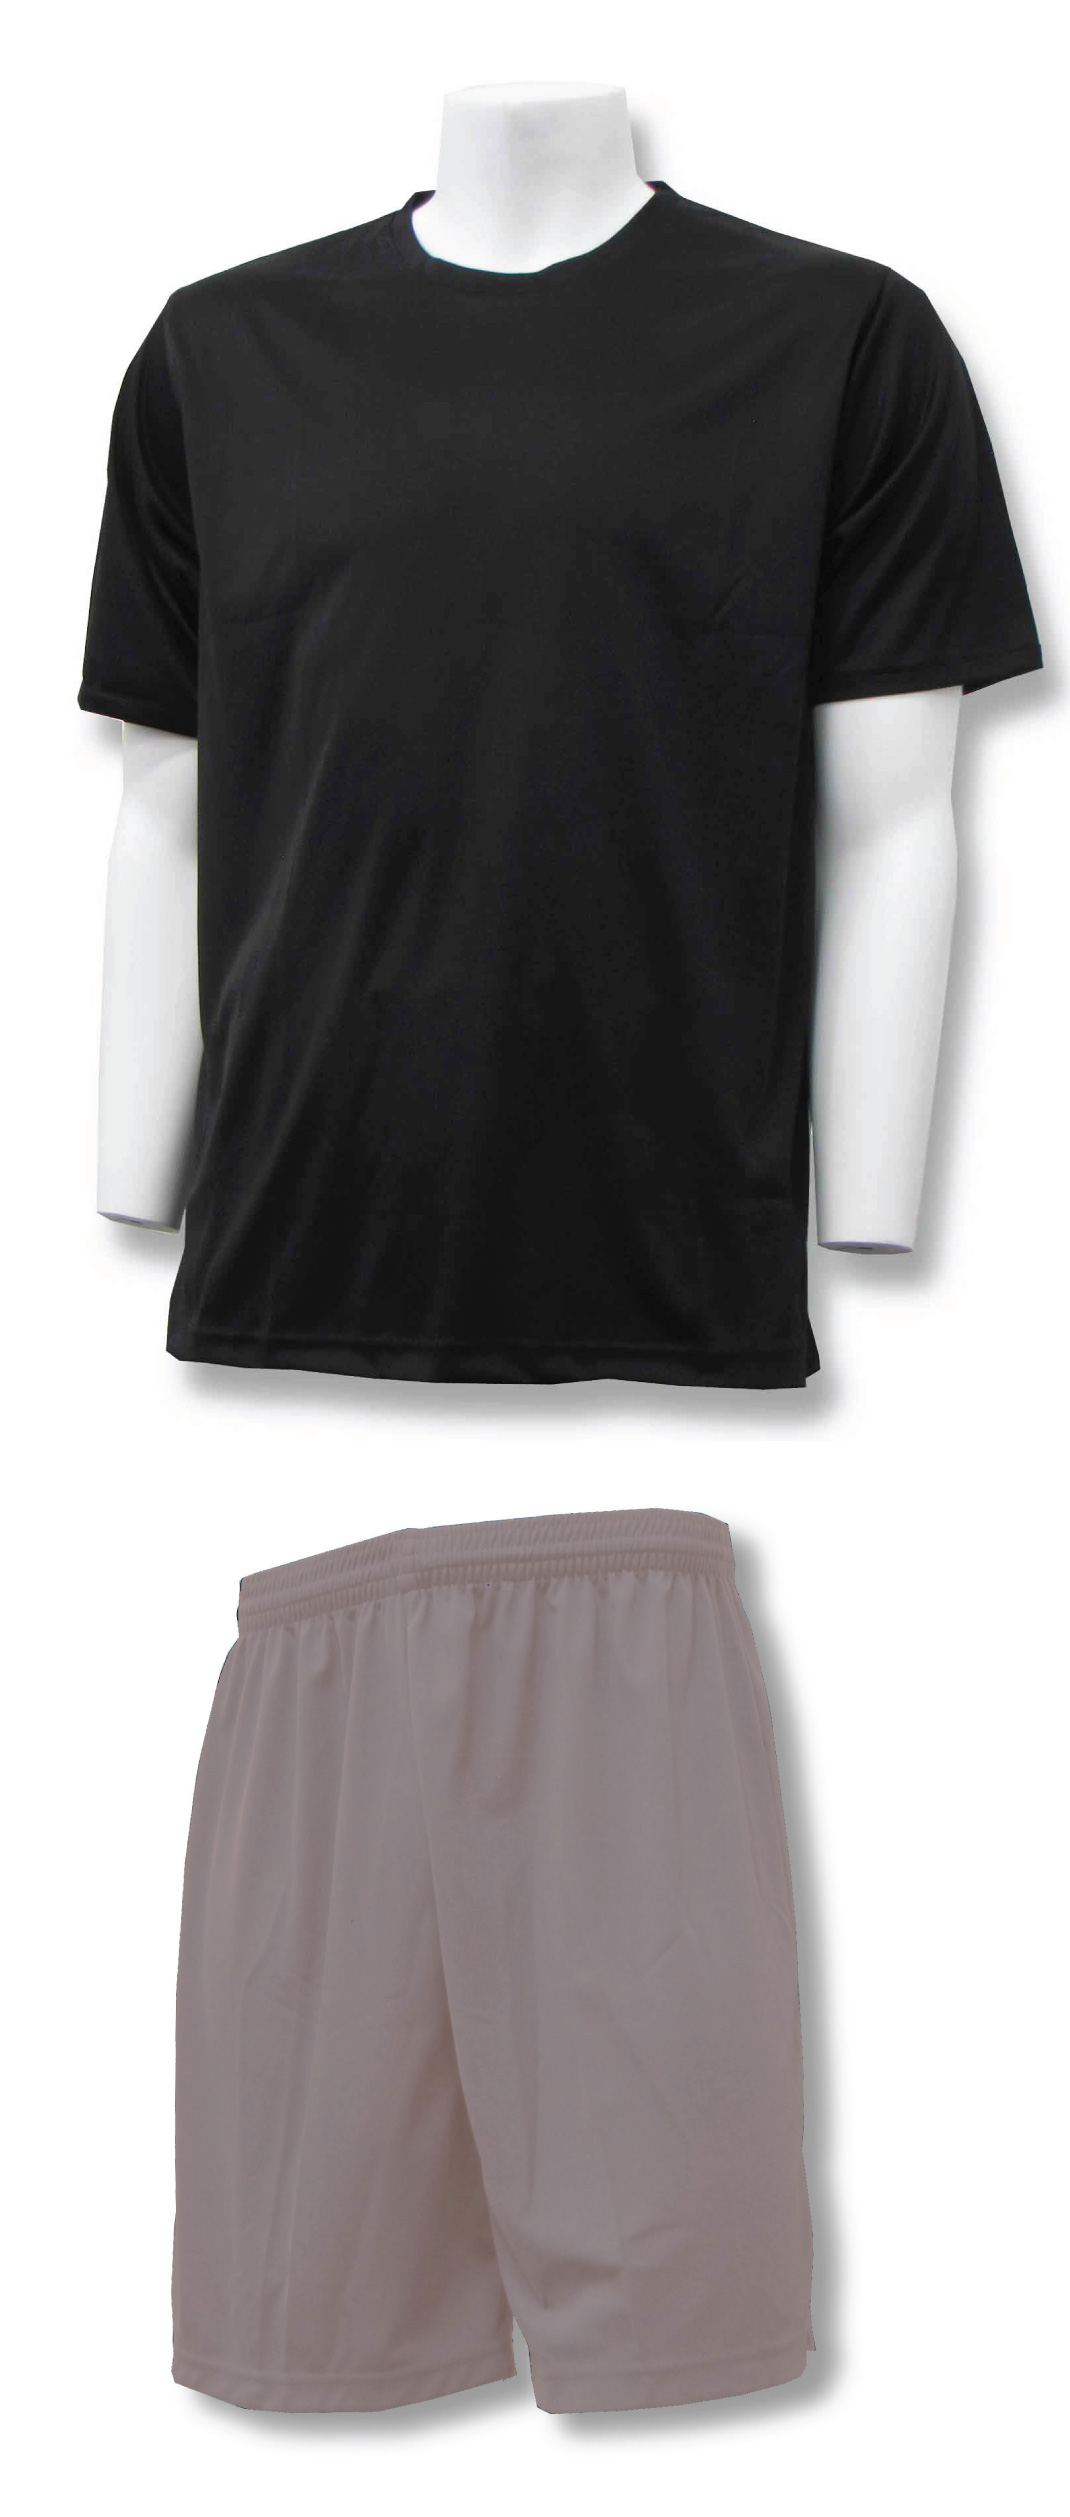 Soccer training uniform kit in black/silver by Code Four Athletics